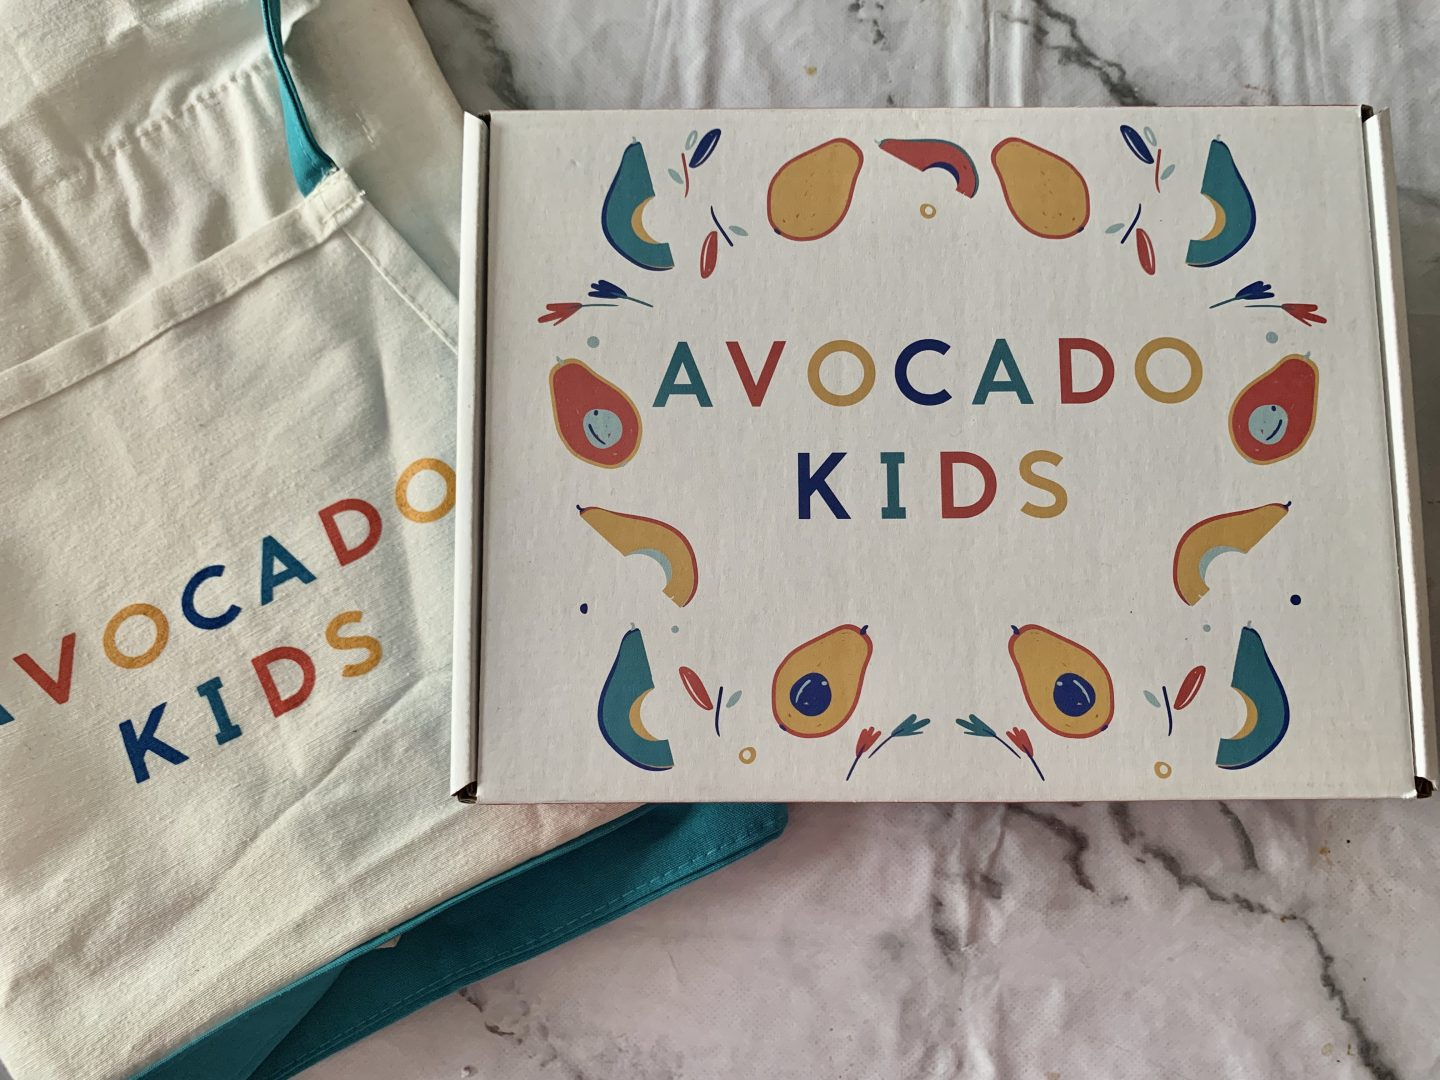 Avocado kids food subscription box review